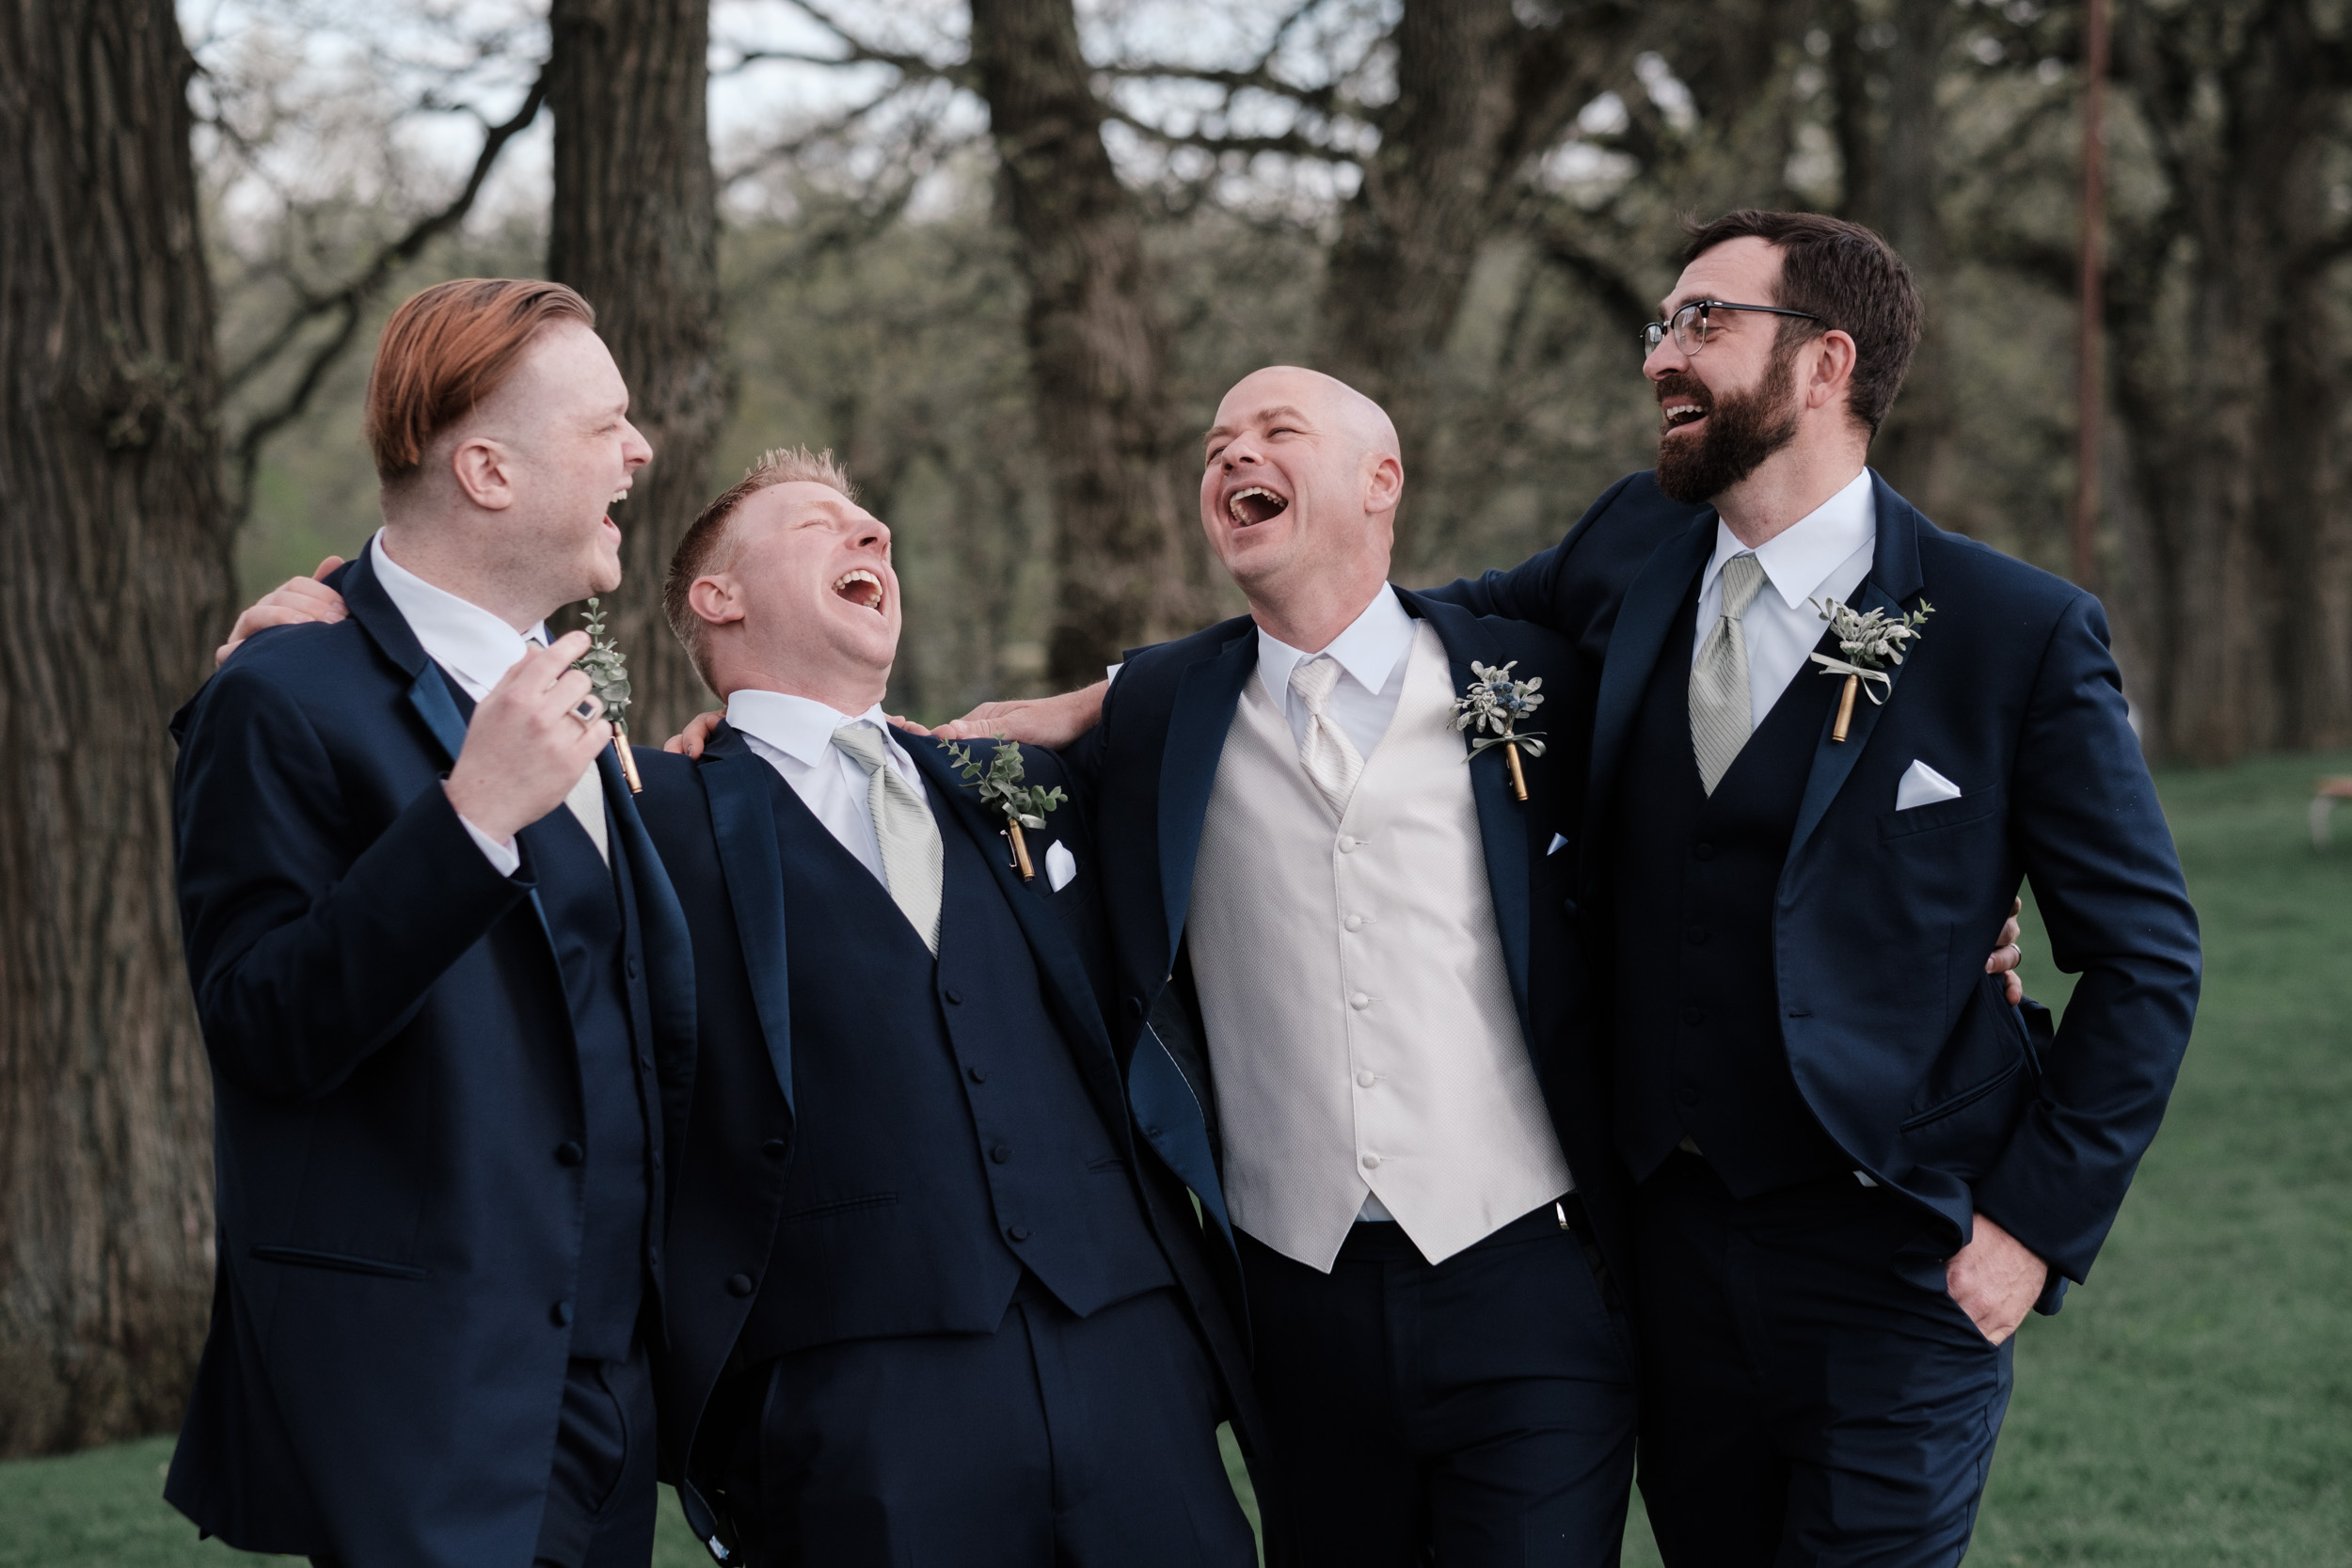 candid portrait of groom and groomsmen on wedding day laughing